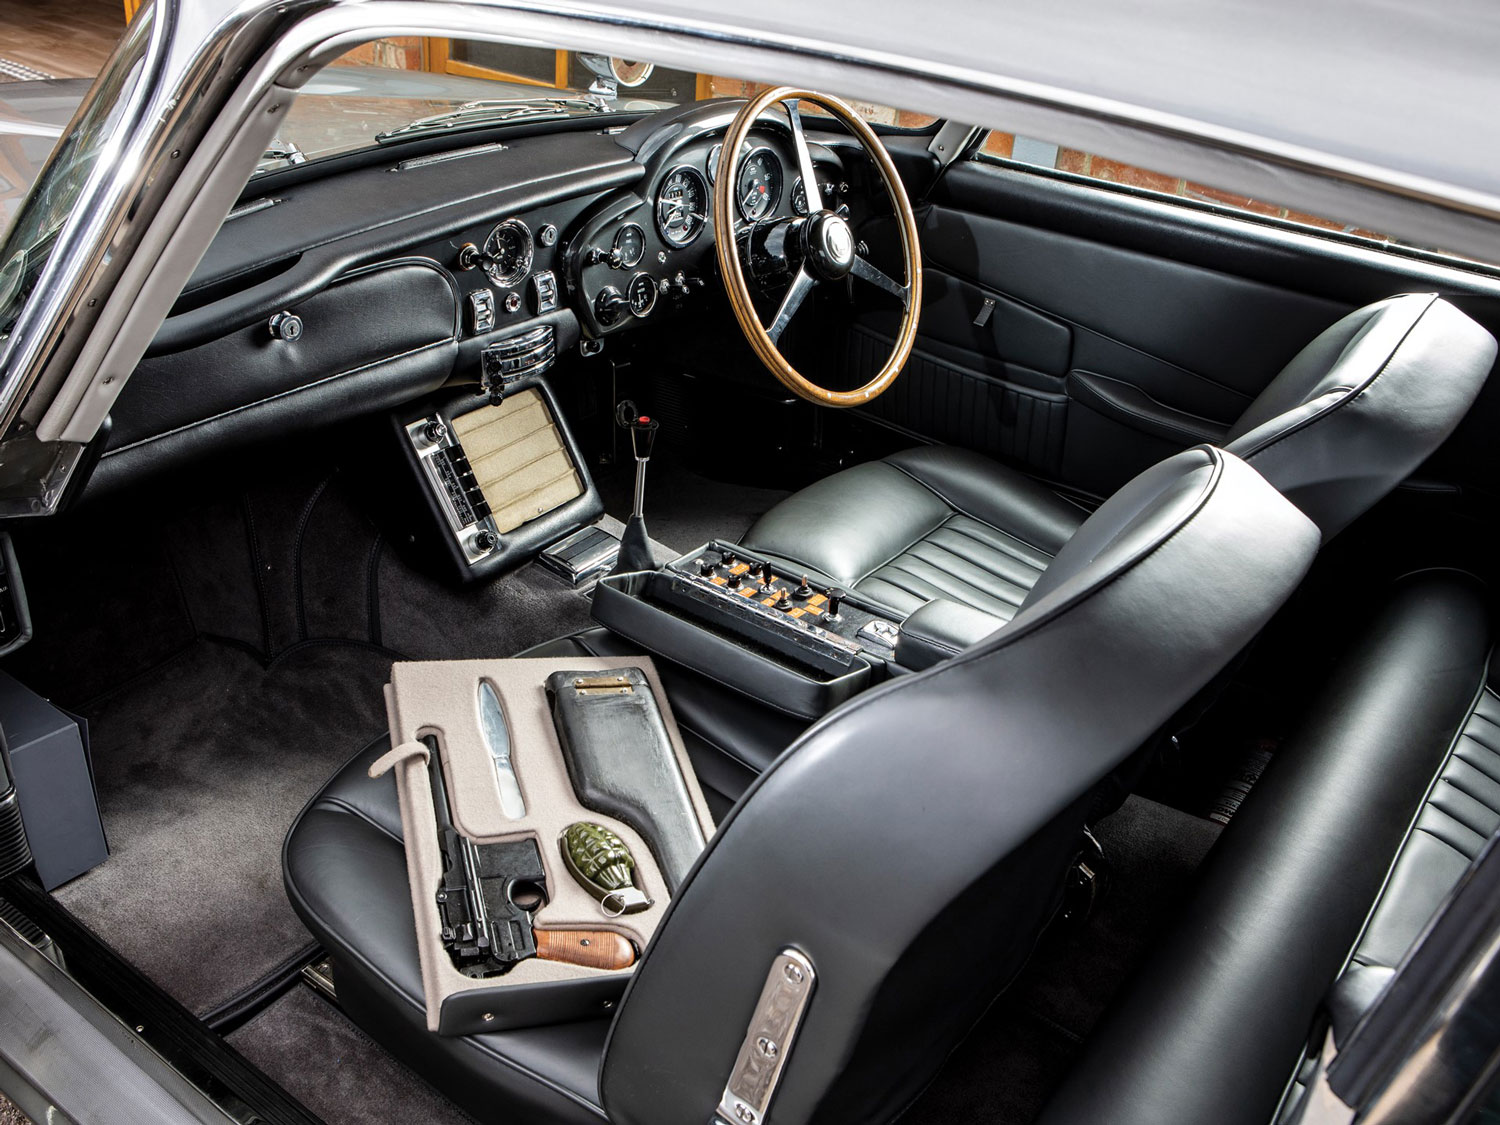 1965 Aston Martin DB5 'Bond Car' Interior